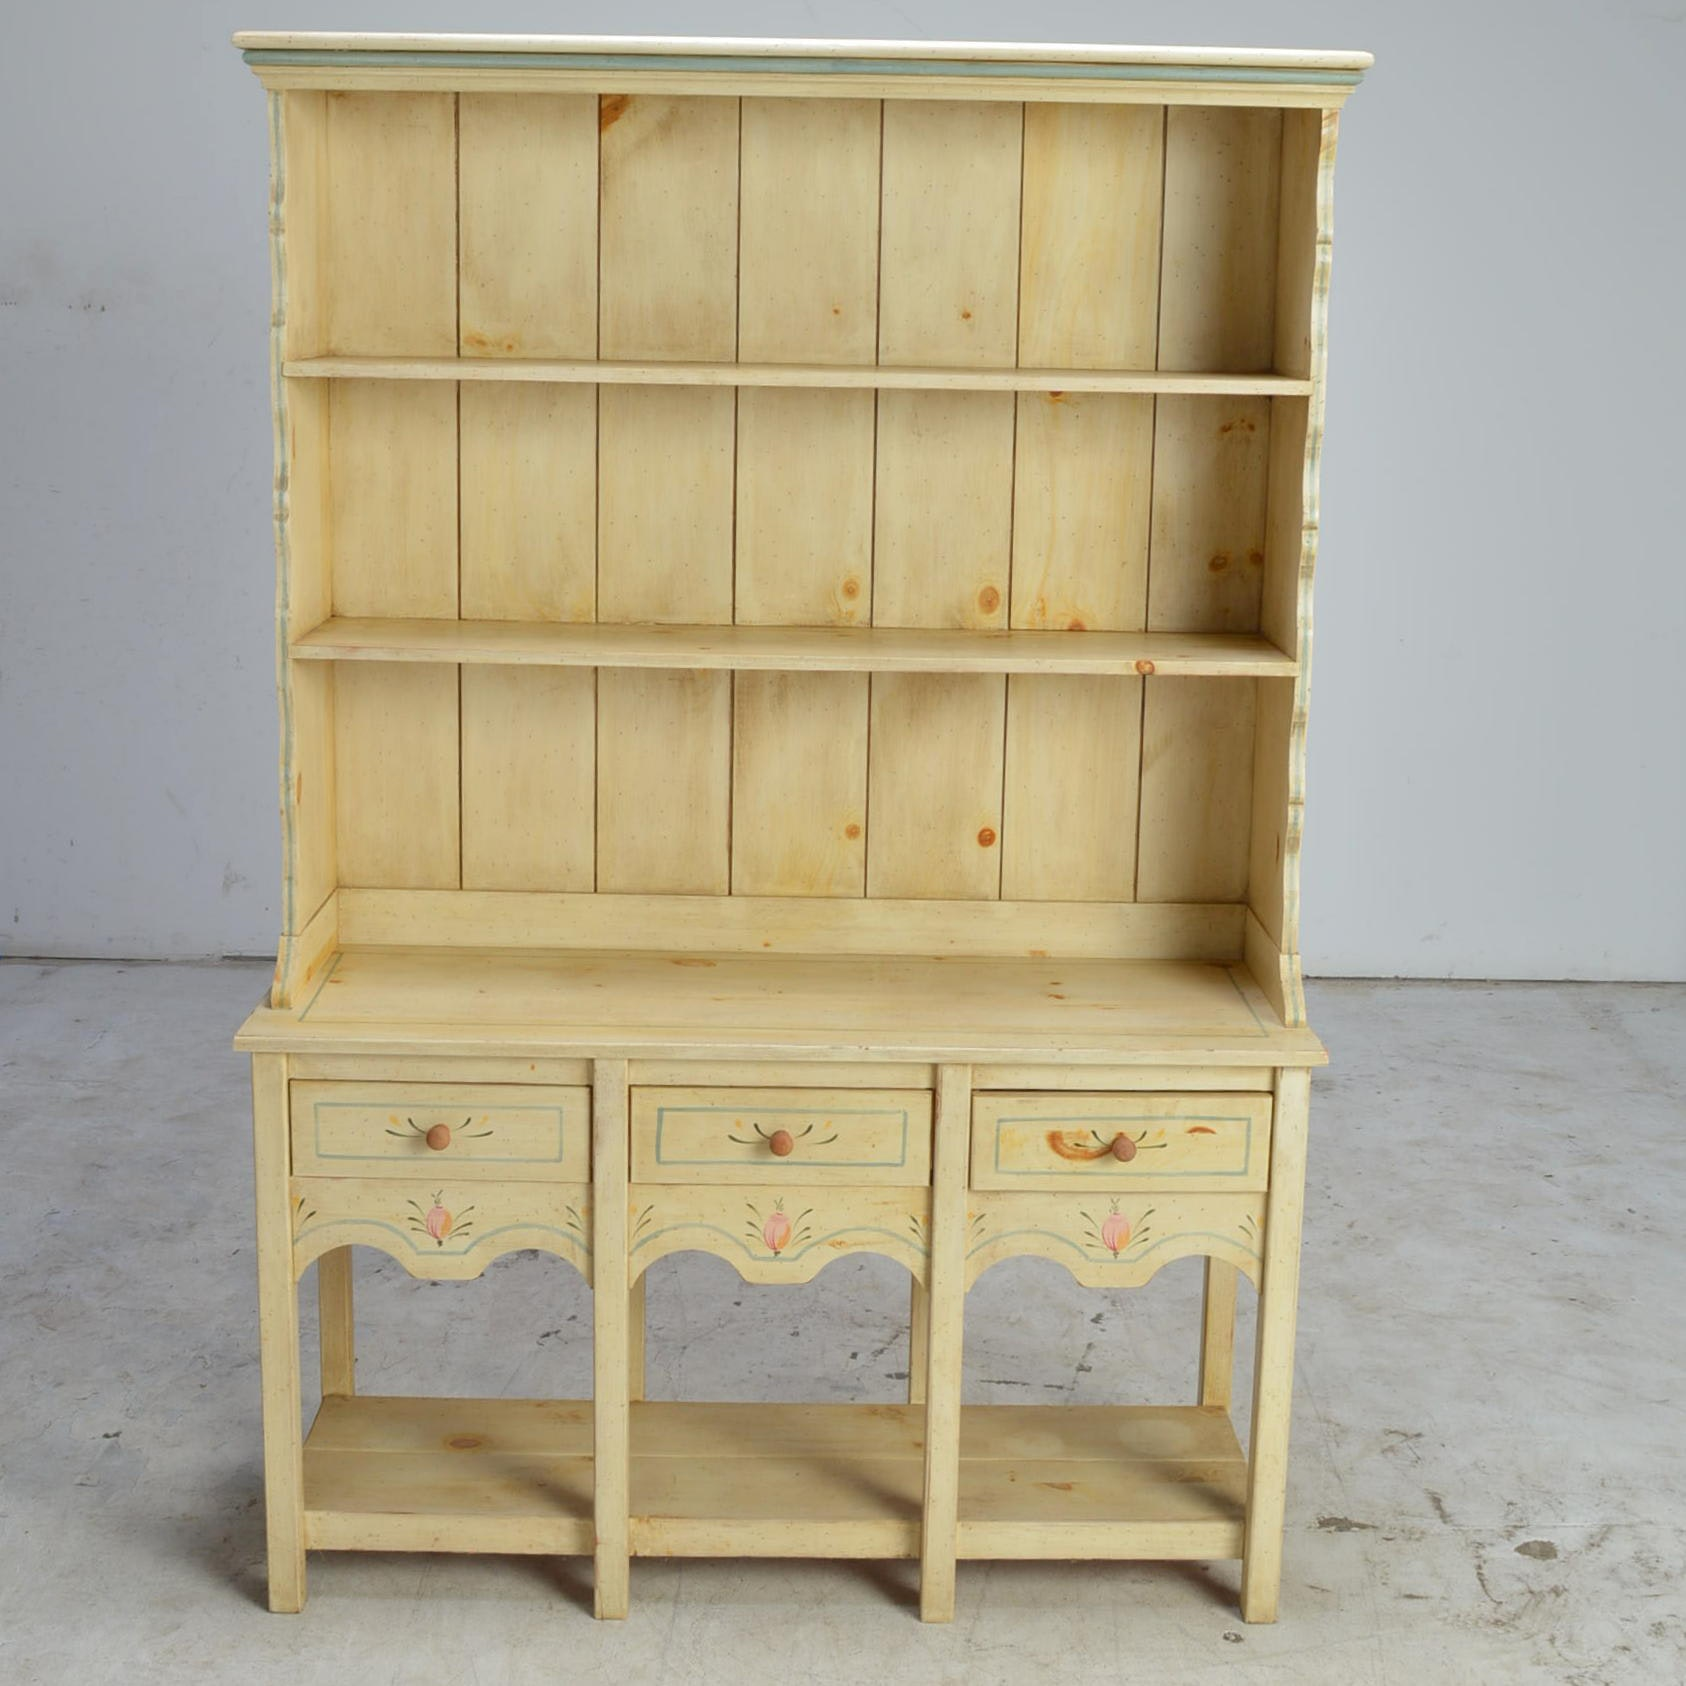 Hand Painted Pine Sideboard with Hutch